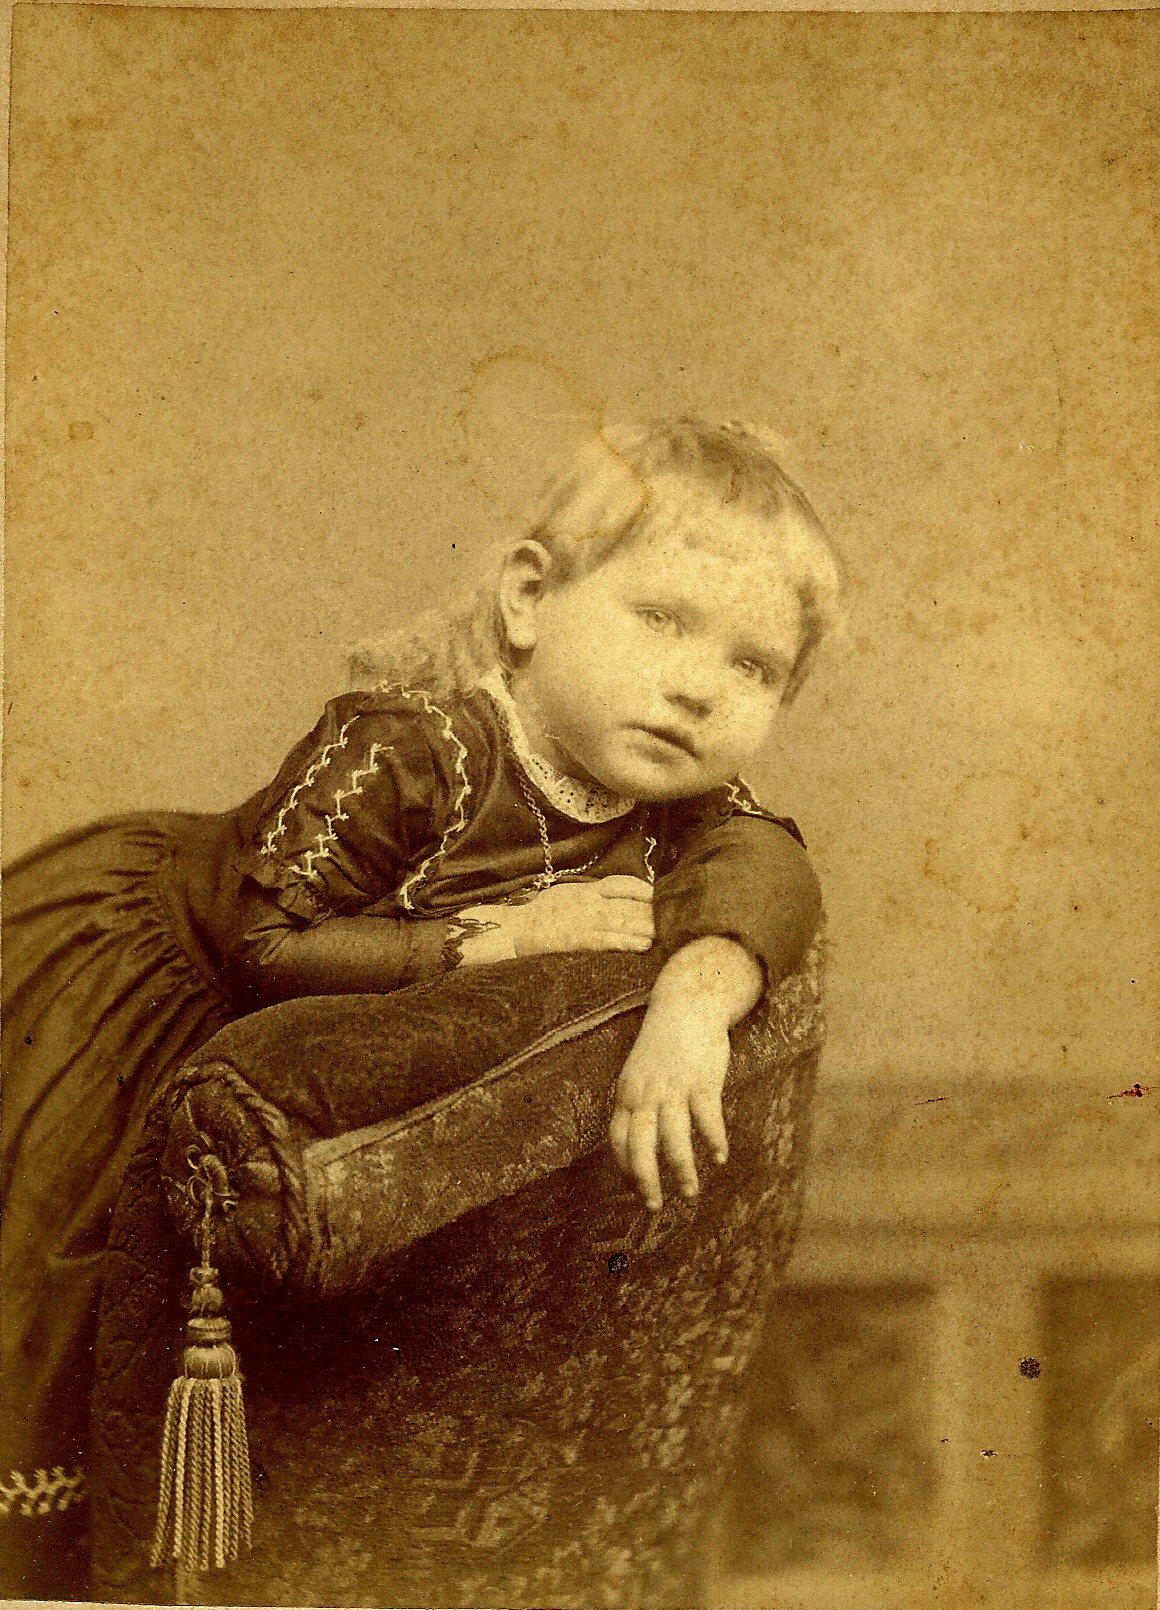 Cabinet Card dating